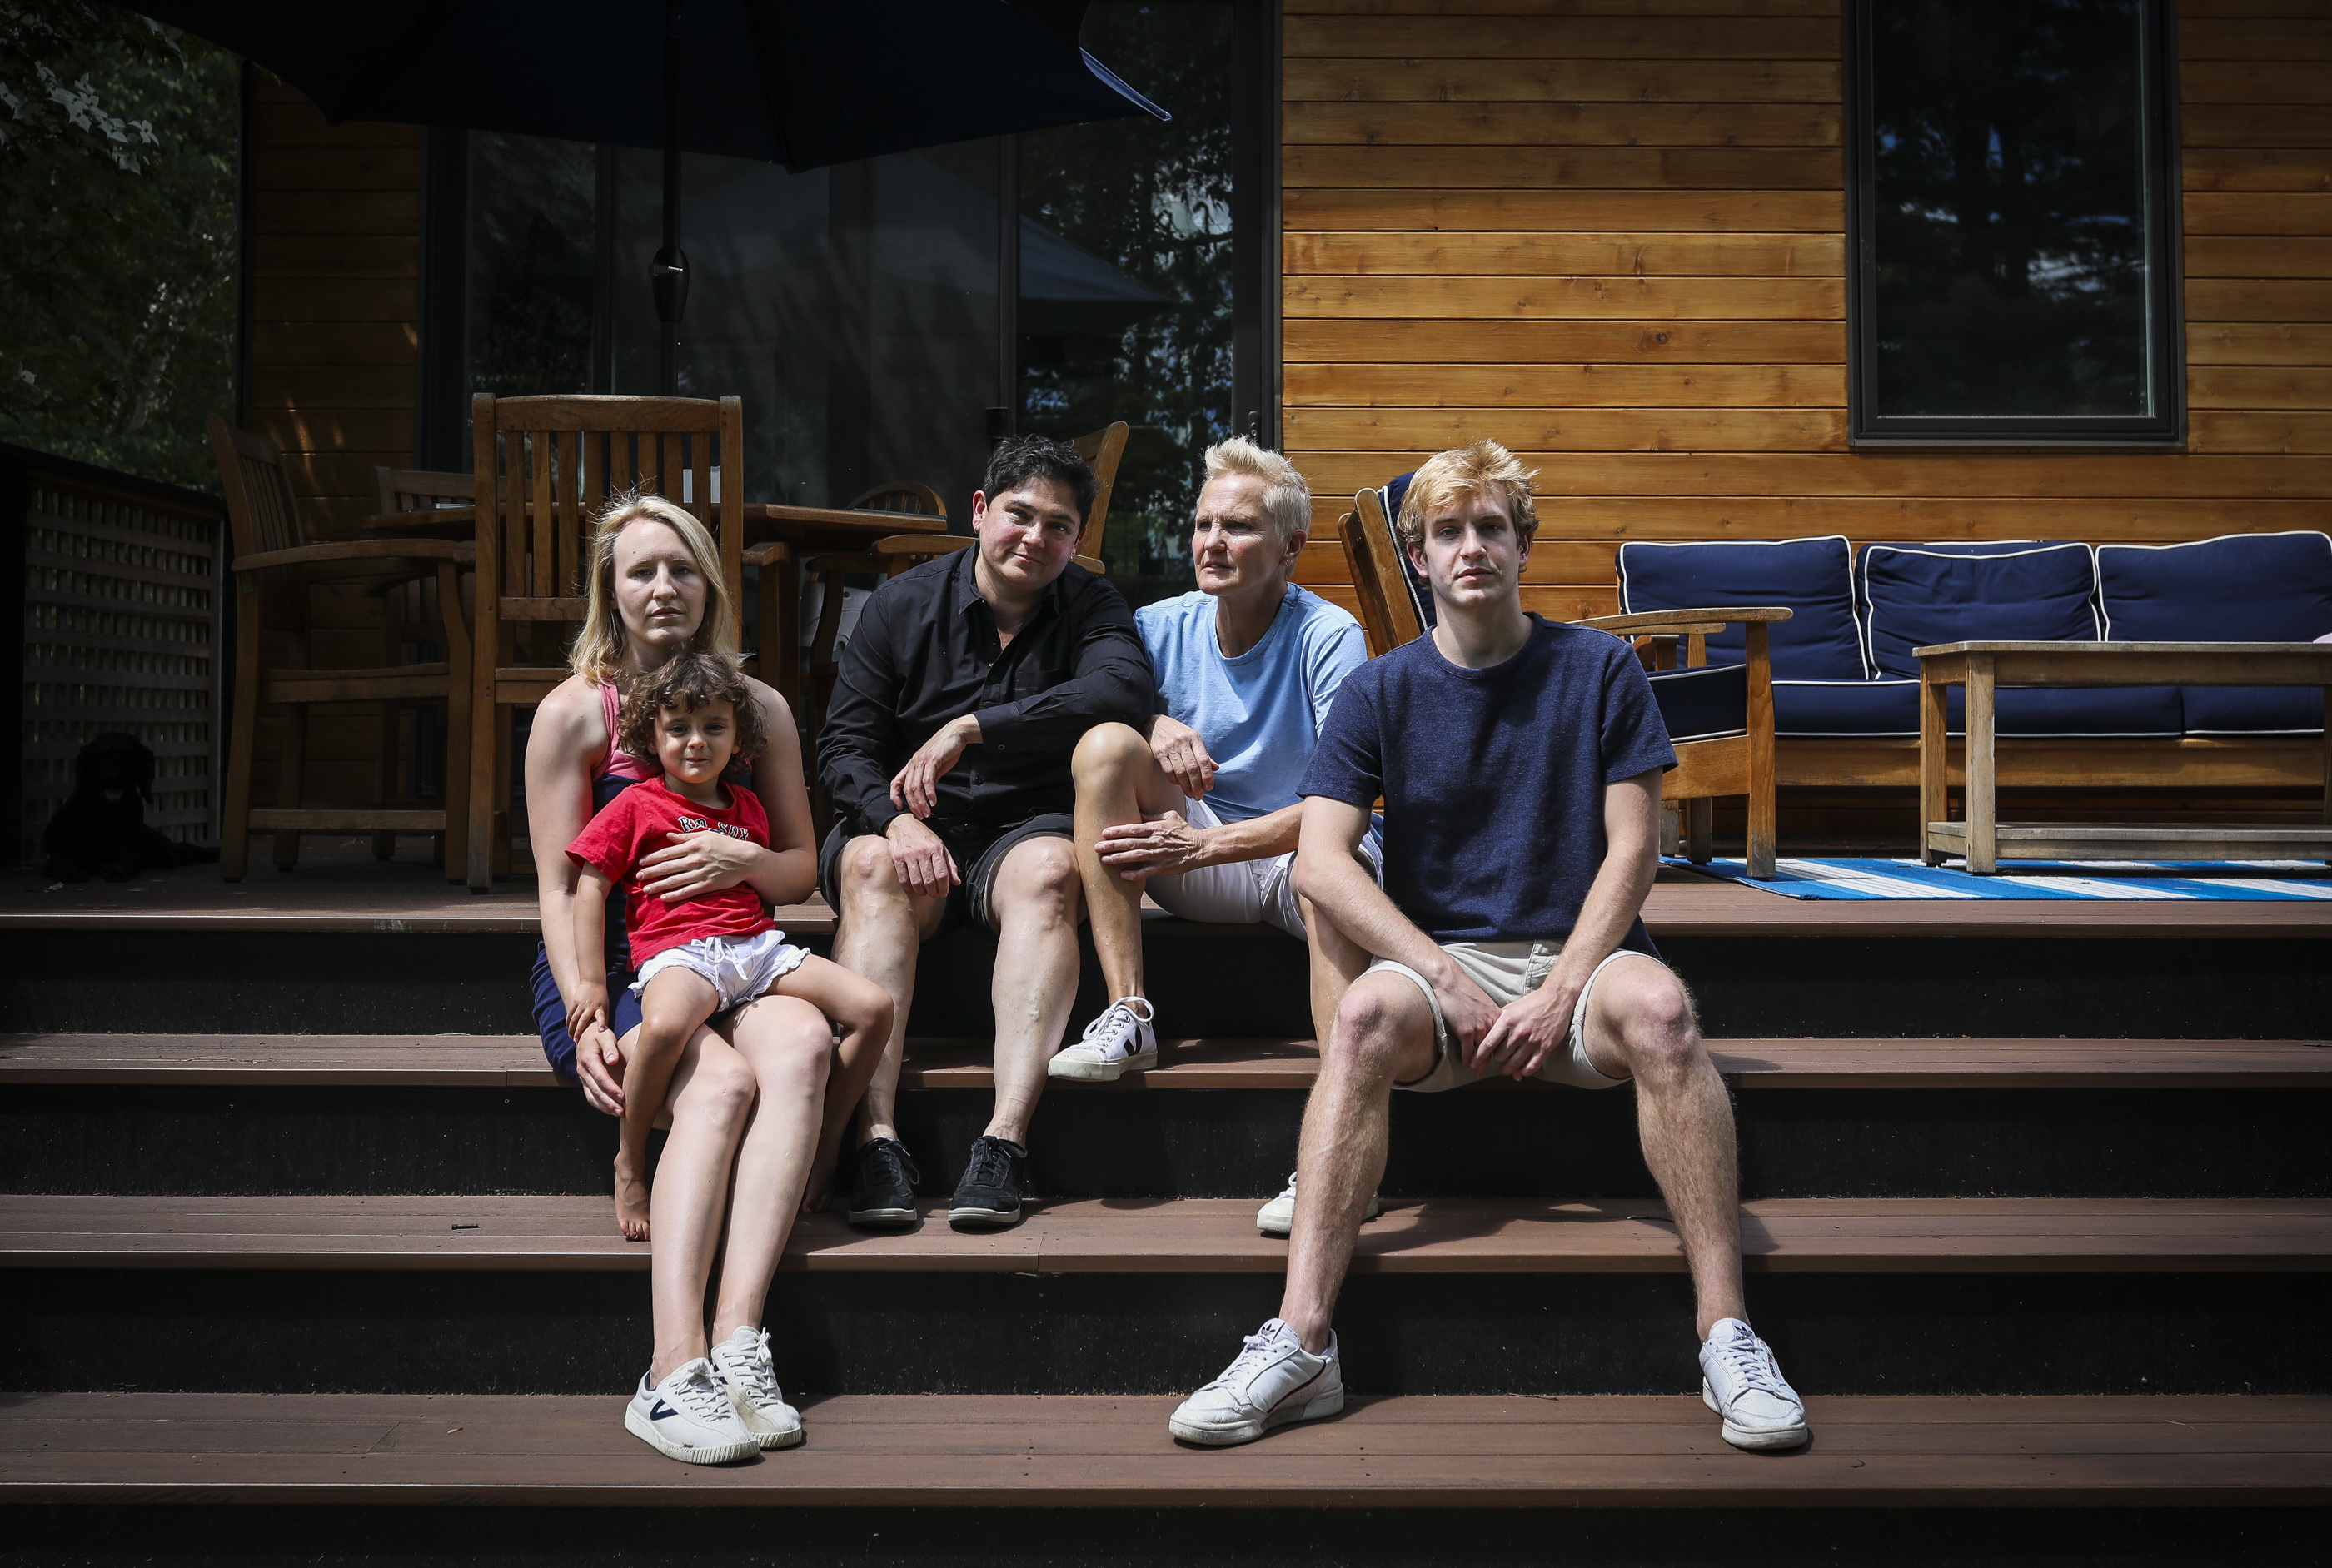 Estey Ticknor had two children with her first husband before before coming out as gay and marrying her partner, Dr. Tara Lagu. Her children – daughters Persis Ticknor-Swanson and three-year-old Freddie Ticknor-Lagu, and son Calvin Ticknor-Swanson, sit at the Ticknor-Lagu home in Easthampton.